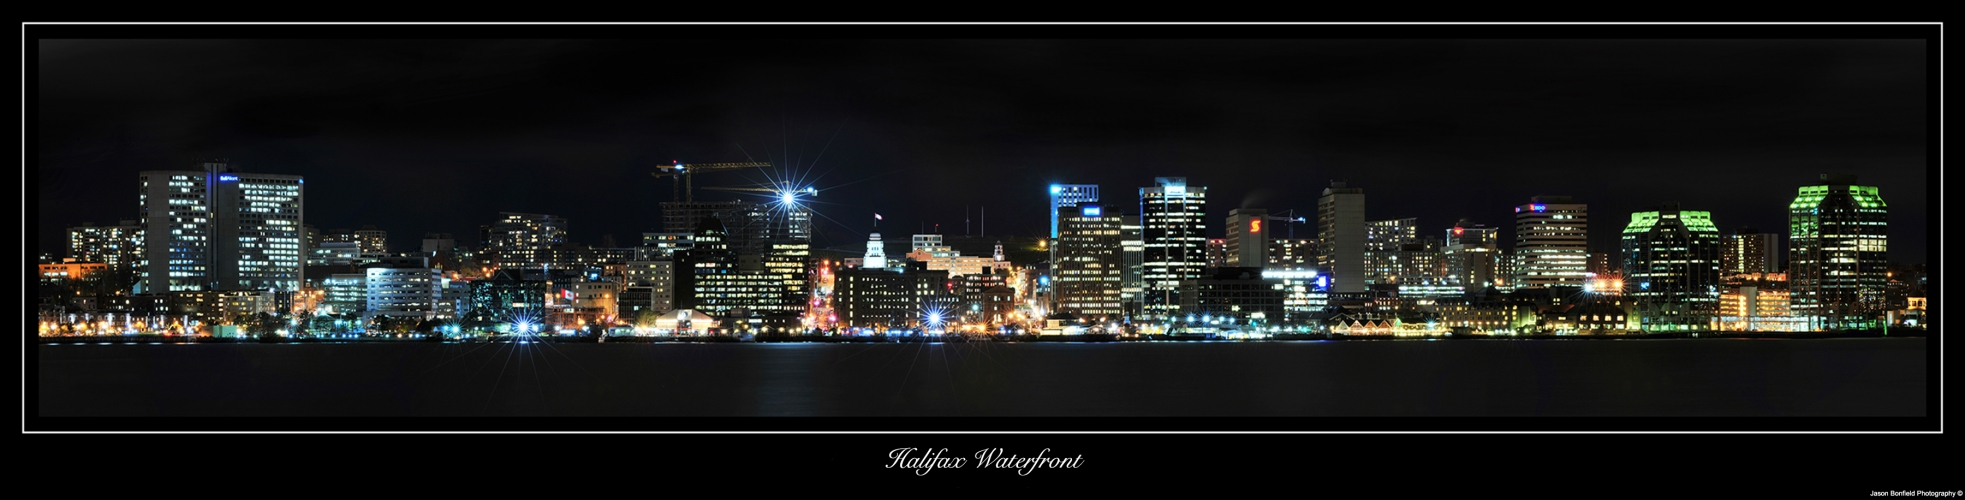 Nighttime panoramic landscape picture of Halifax city waterfront, Nova Scotia, Canada.